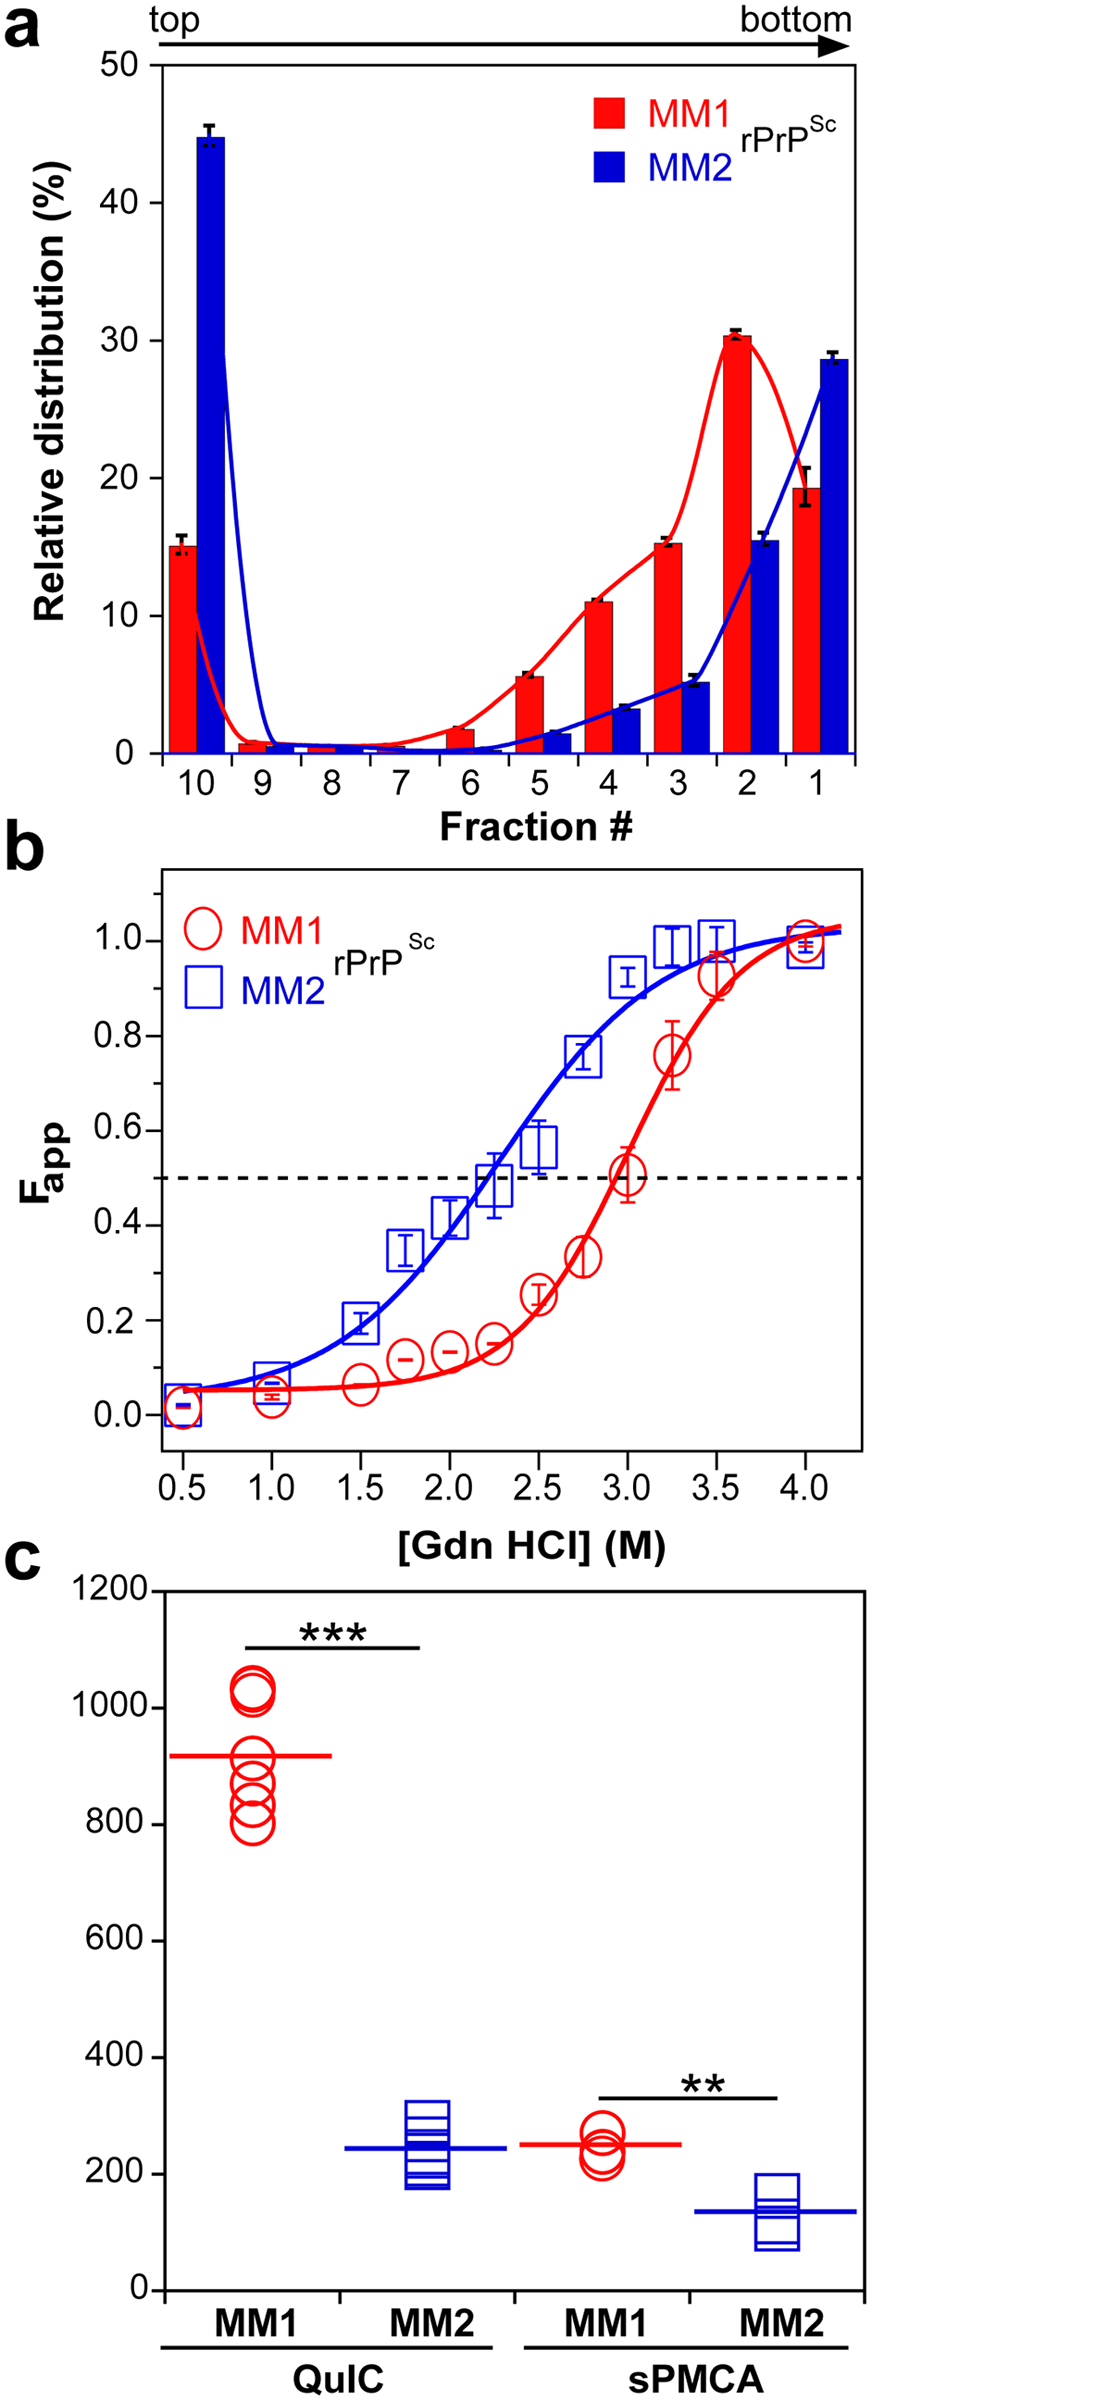 Sedimentation velocity, conformational stability, and seeding potency of isolated sCJD prions.